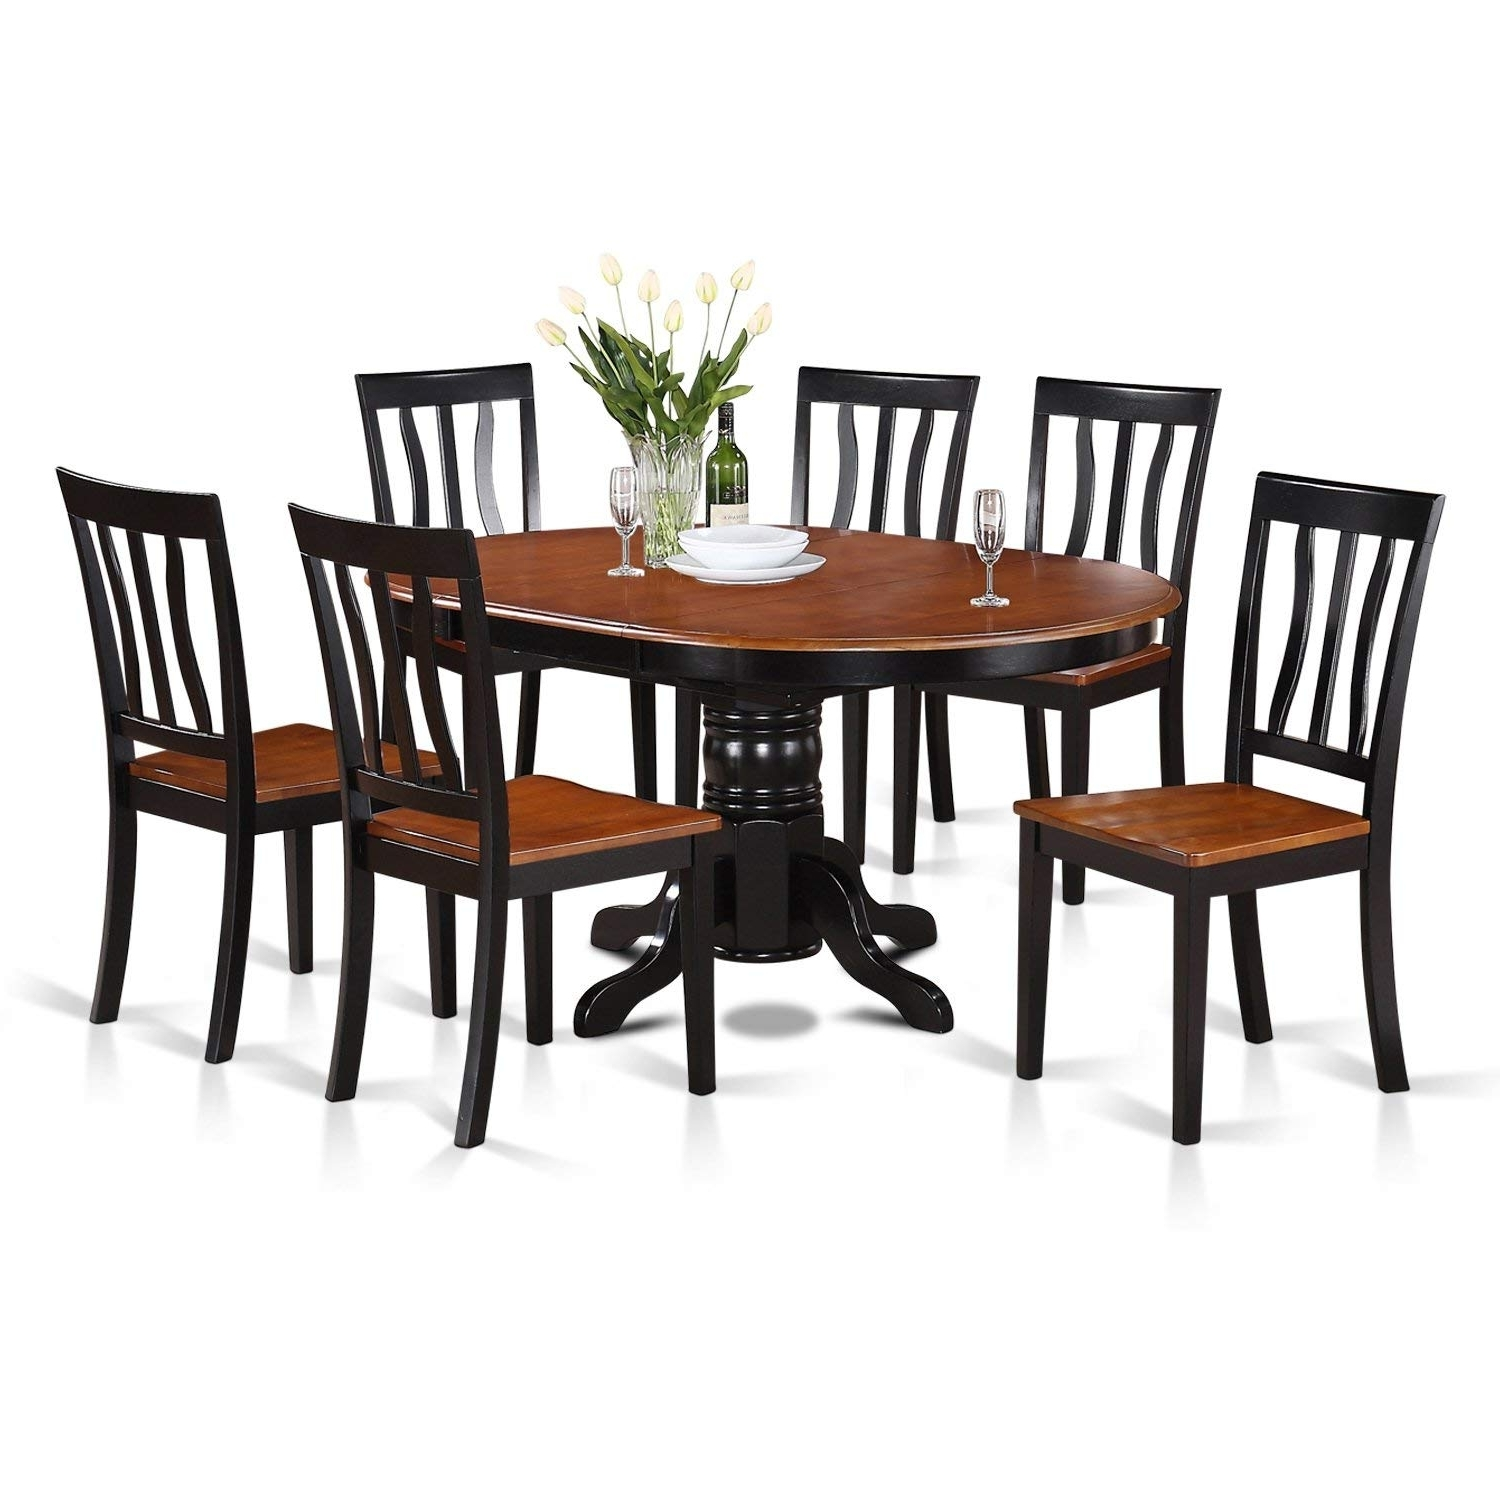 Jaxon Grey 6 Piece Rectangle Extension Dining Sets With Bench & Uph Chairs For 2017 Amazon: East West Furniture Avat7 Blk W 7 Piece Dining Table Set (View 11 of 25)